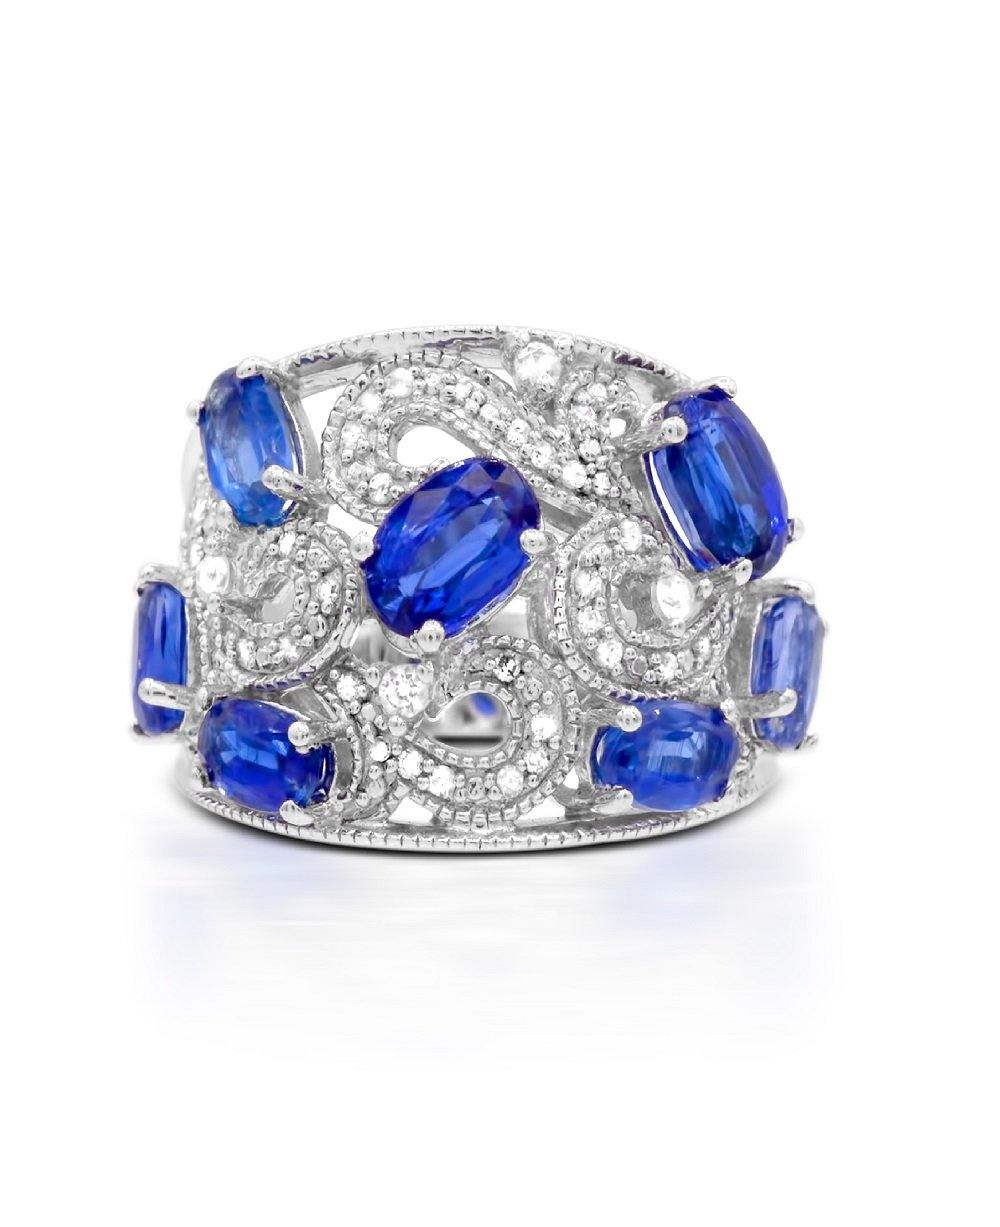 Kyanite, White Zircon and Diamond Ring in Sterling Silver - For The Love of Jewelry